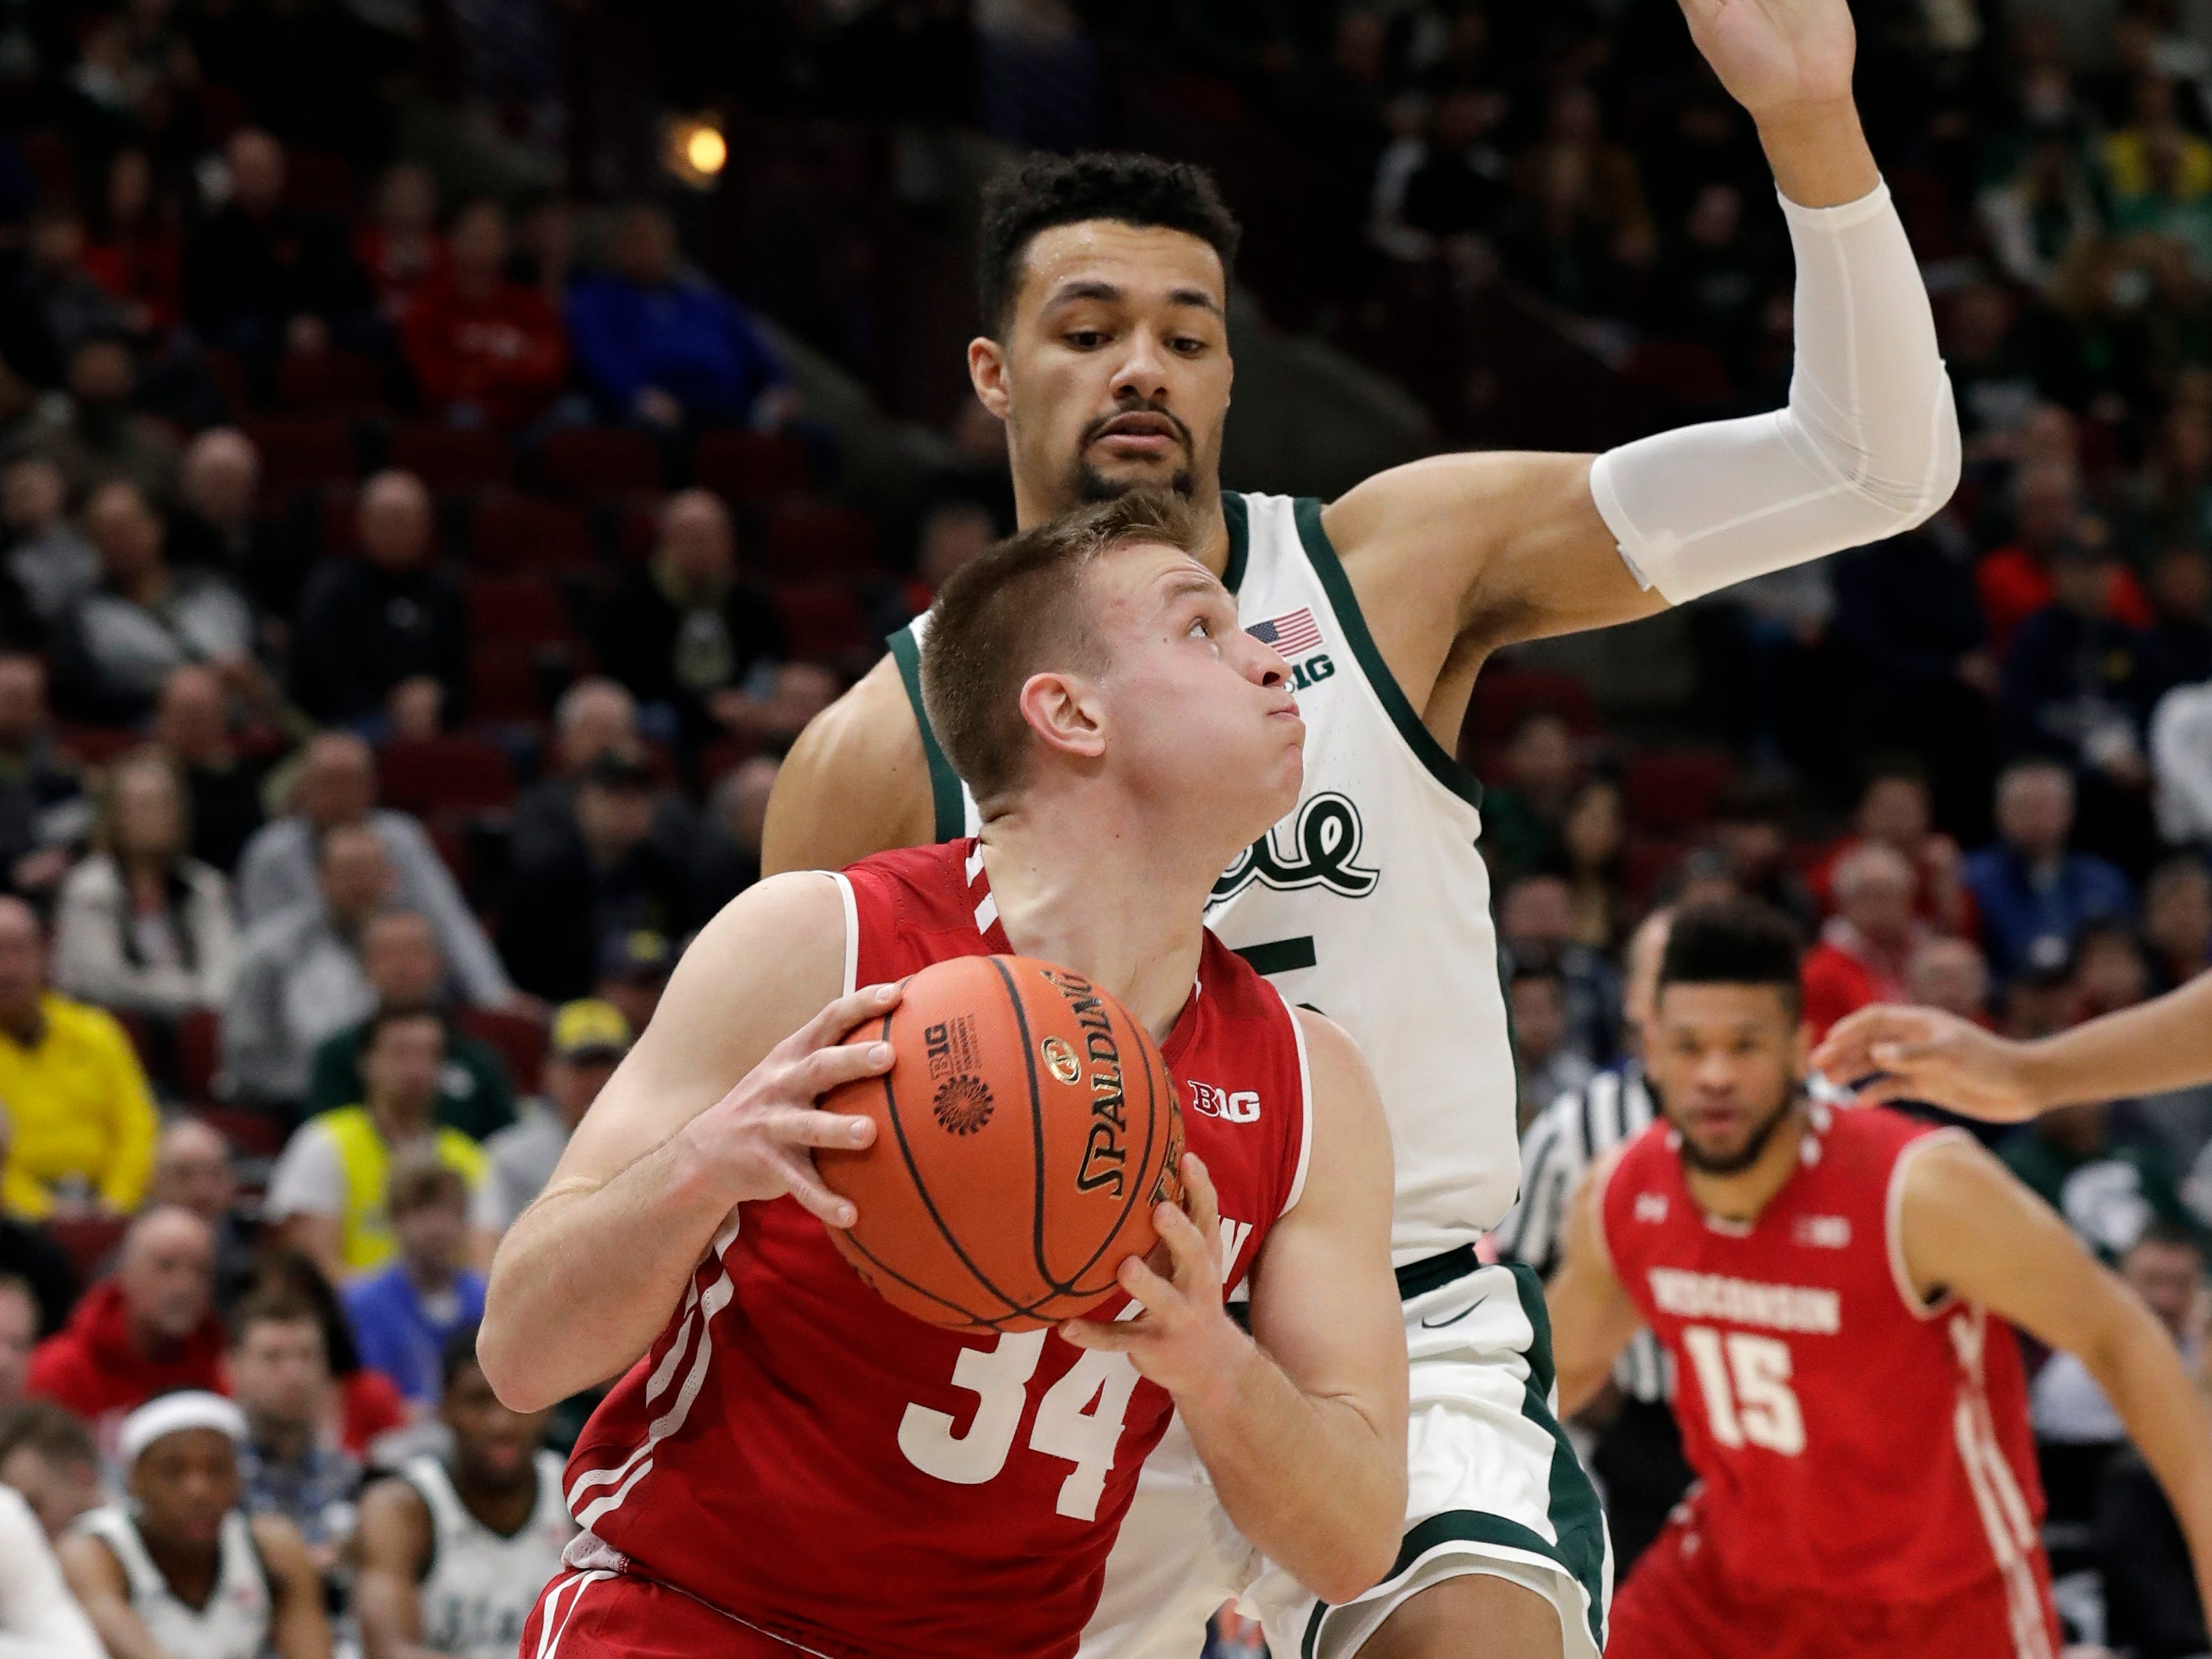 Wisconsin's Carter Higginbottom (4) drives against Michigan State's Kenny Goins (25) during the first half of an NCAA college basketball game in the semifinals of the Big Ten Conference tournament, Saturday, March 16, 2019, in Chicago.